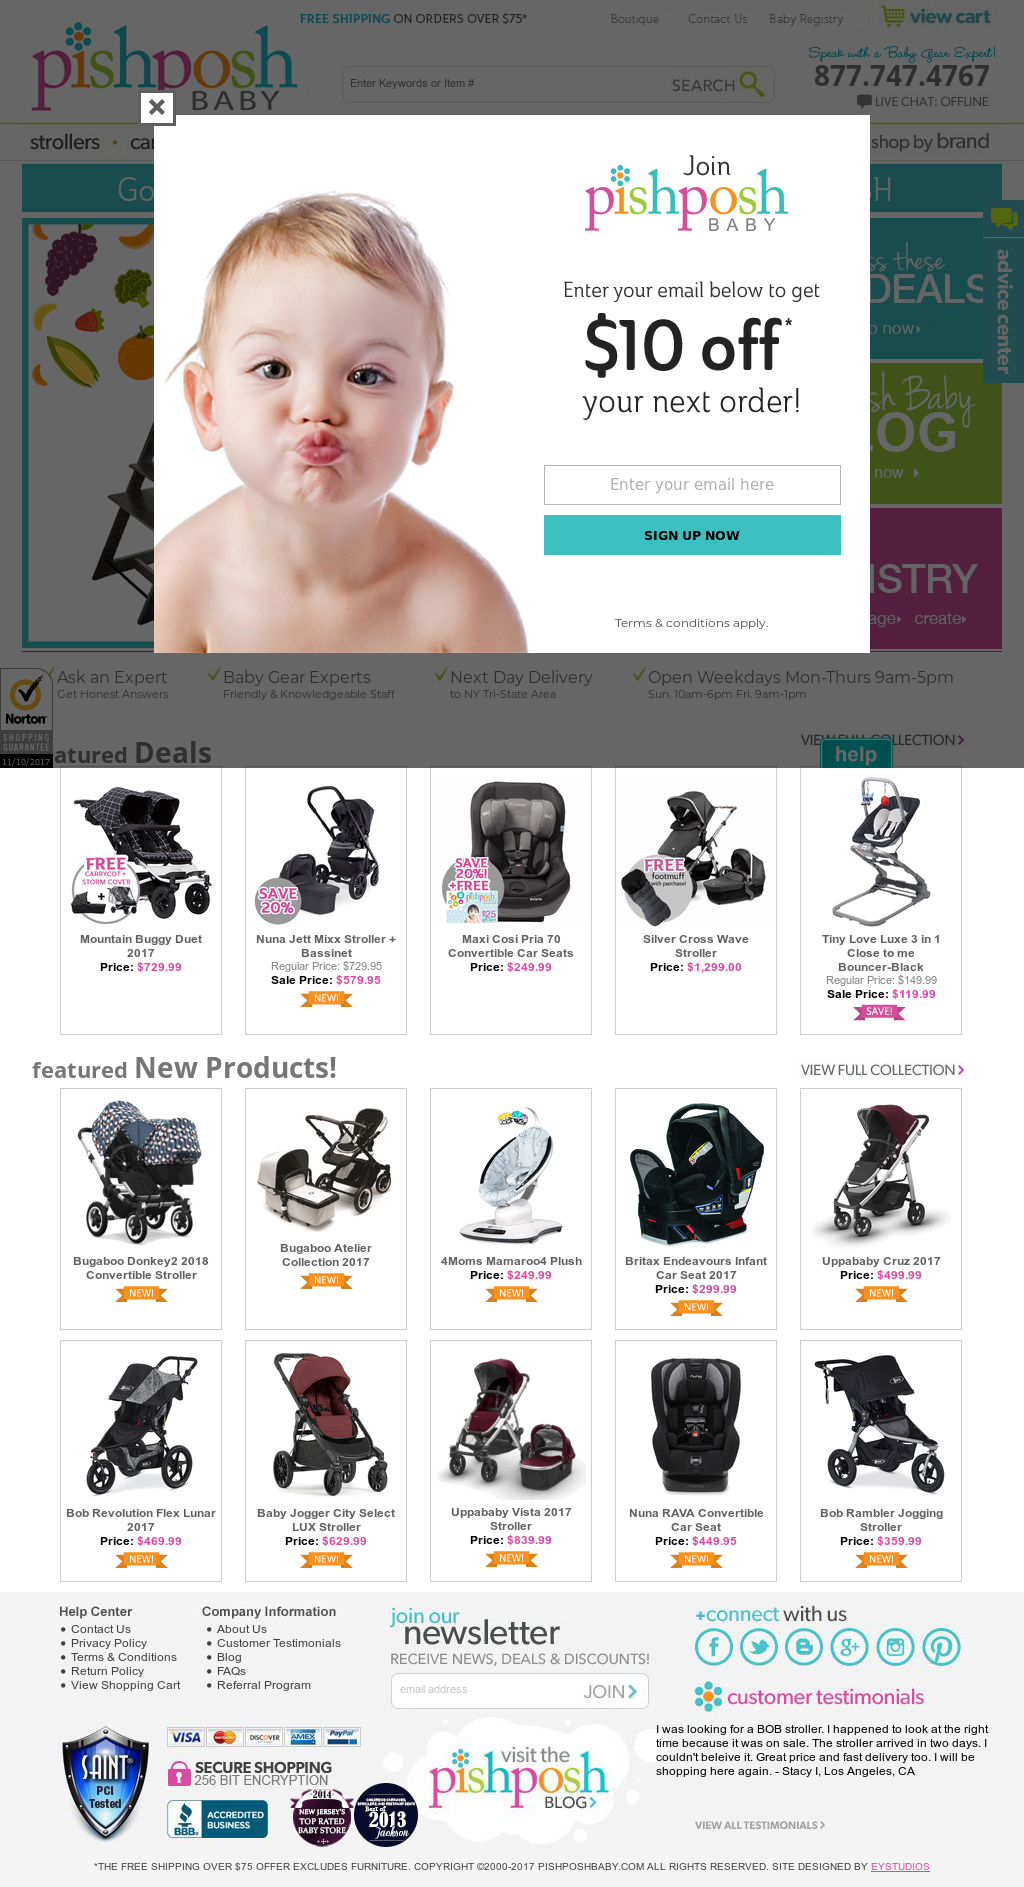 PishPosh Baby @pishposhbaby Pish Posh Baby is a baby boutique offering the latest and hottest baby gear including strollers, car seats, bedding and more. We're Moms.